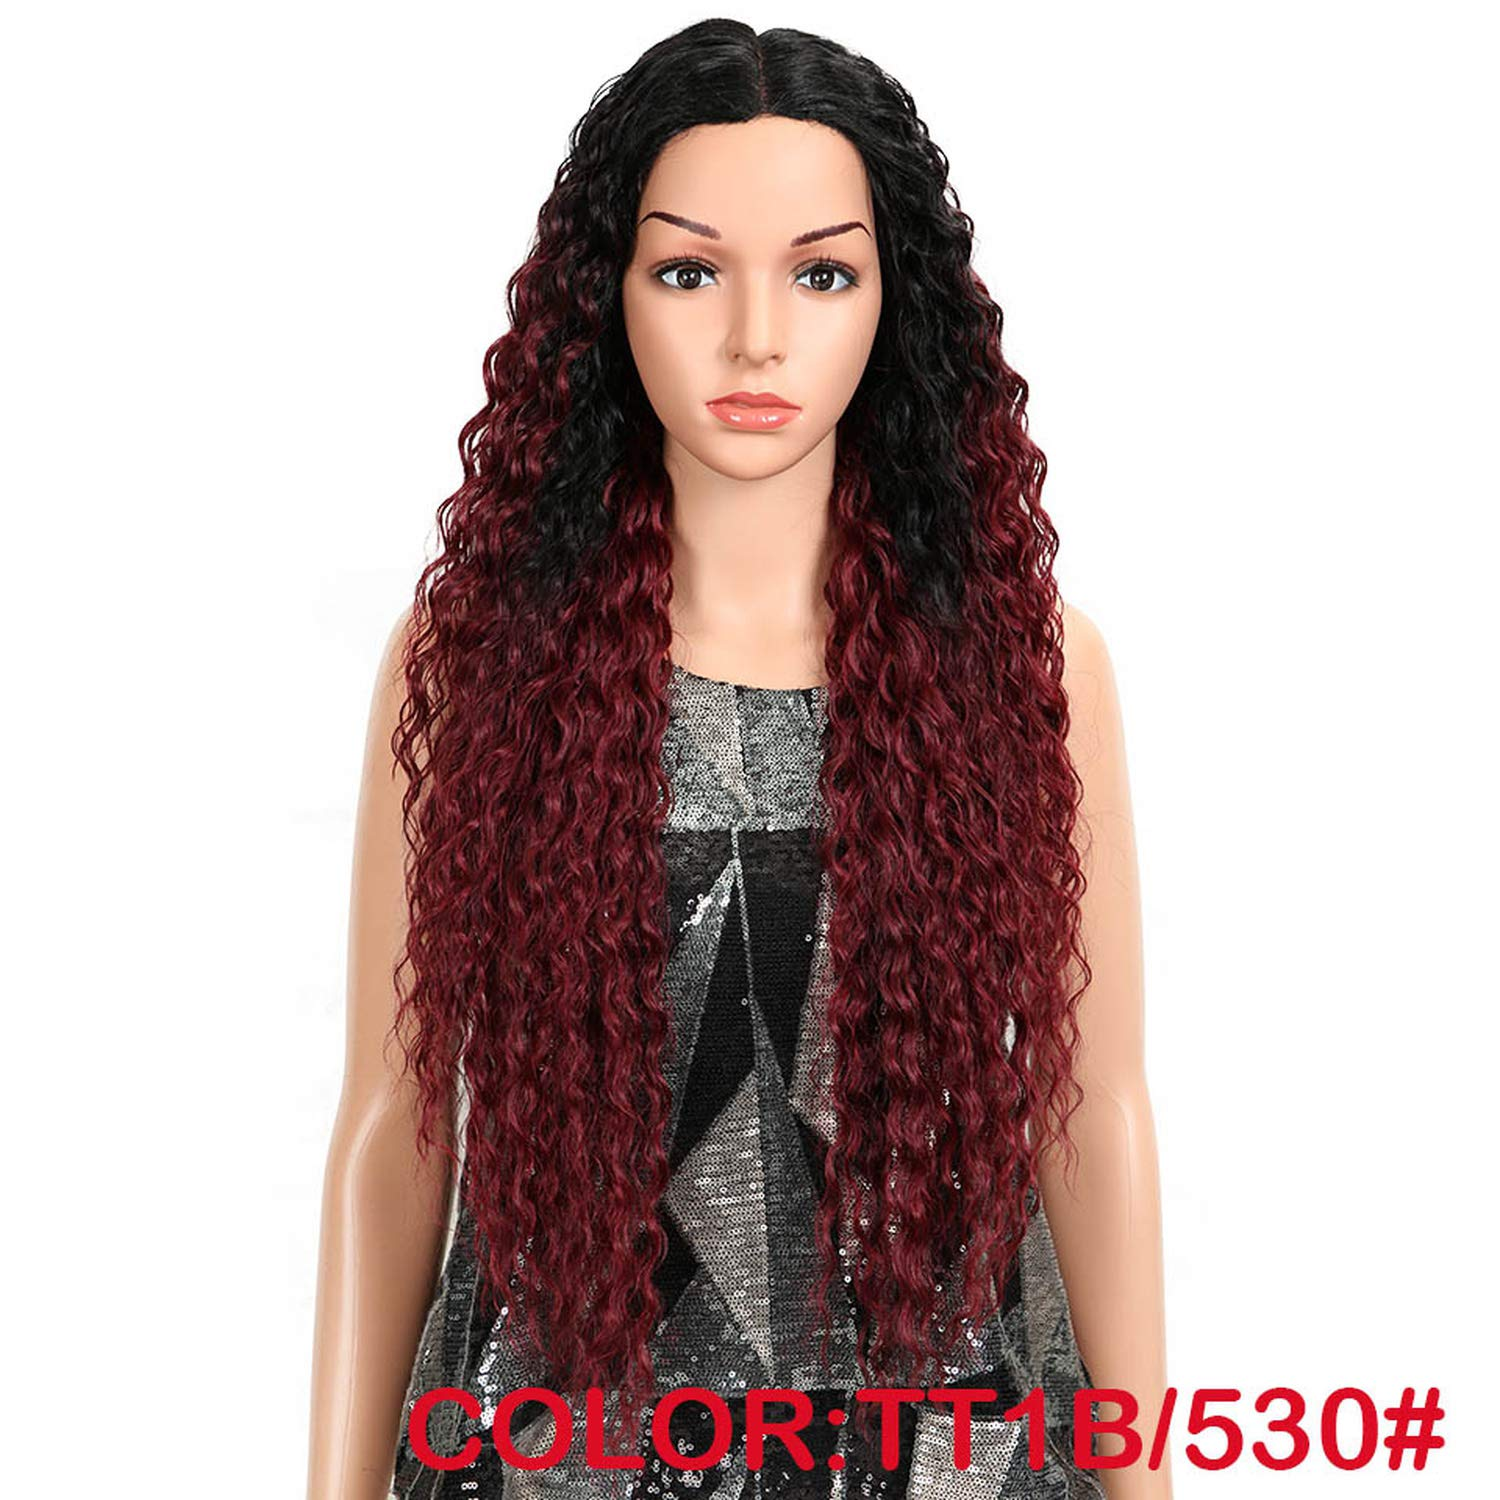 Solarphoenix Hair Curly Glueless High Temperature Fiber Hair 32 Inch Natural Blonde Synthetic Lace Front Wigs For Black Women,TT1B 530,150%,Part,32inches